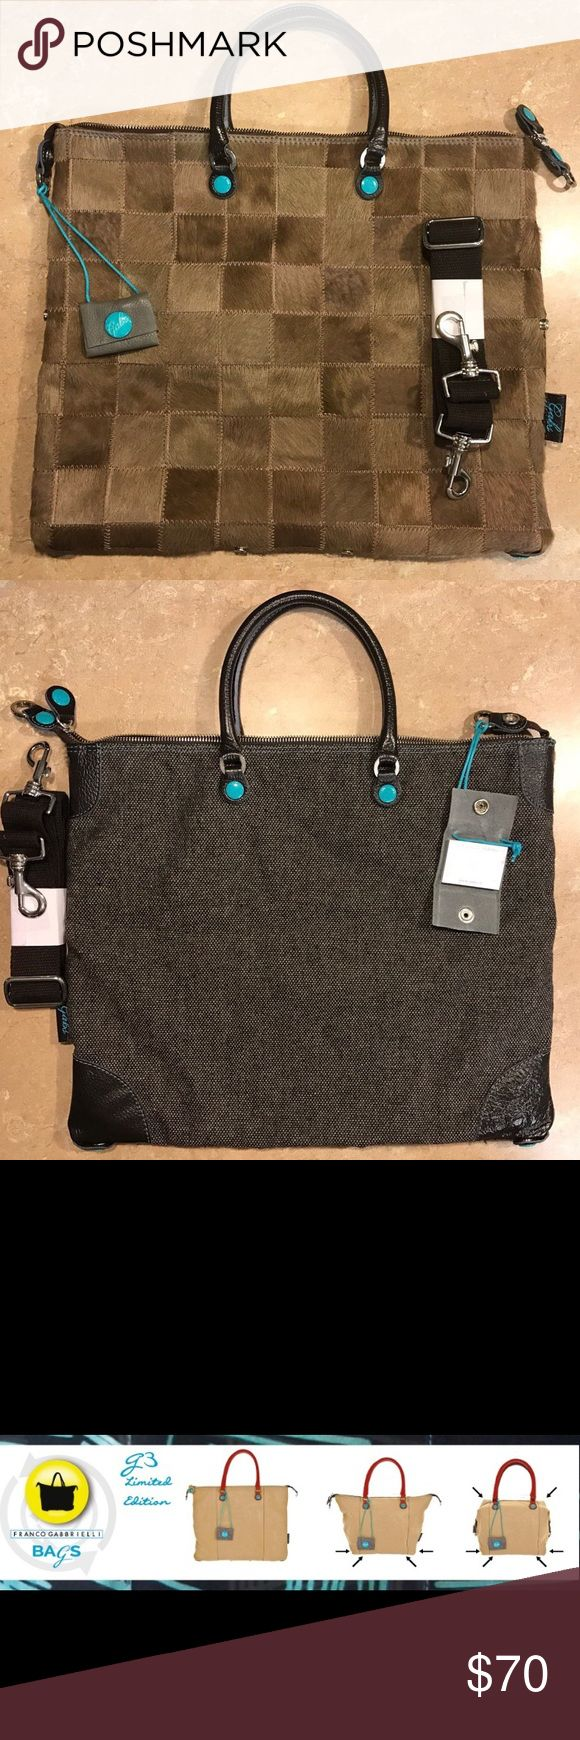 """Gabs G3 bag Italian bag.Bag can take three shapes as pictured. 14"""" 12"""" 3"""" adjustable strap is included, cute mini leather hanging notebook, aqua blue lining 100% cotton, one zipper pocket and two open pockets inside Gabs Bags Shoulder Bags"""